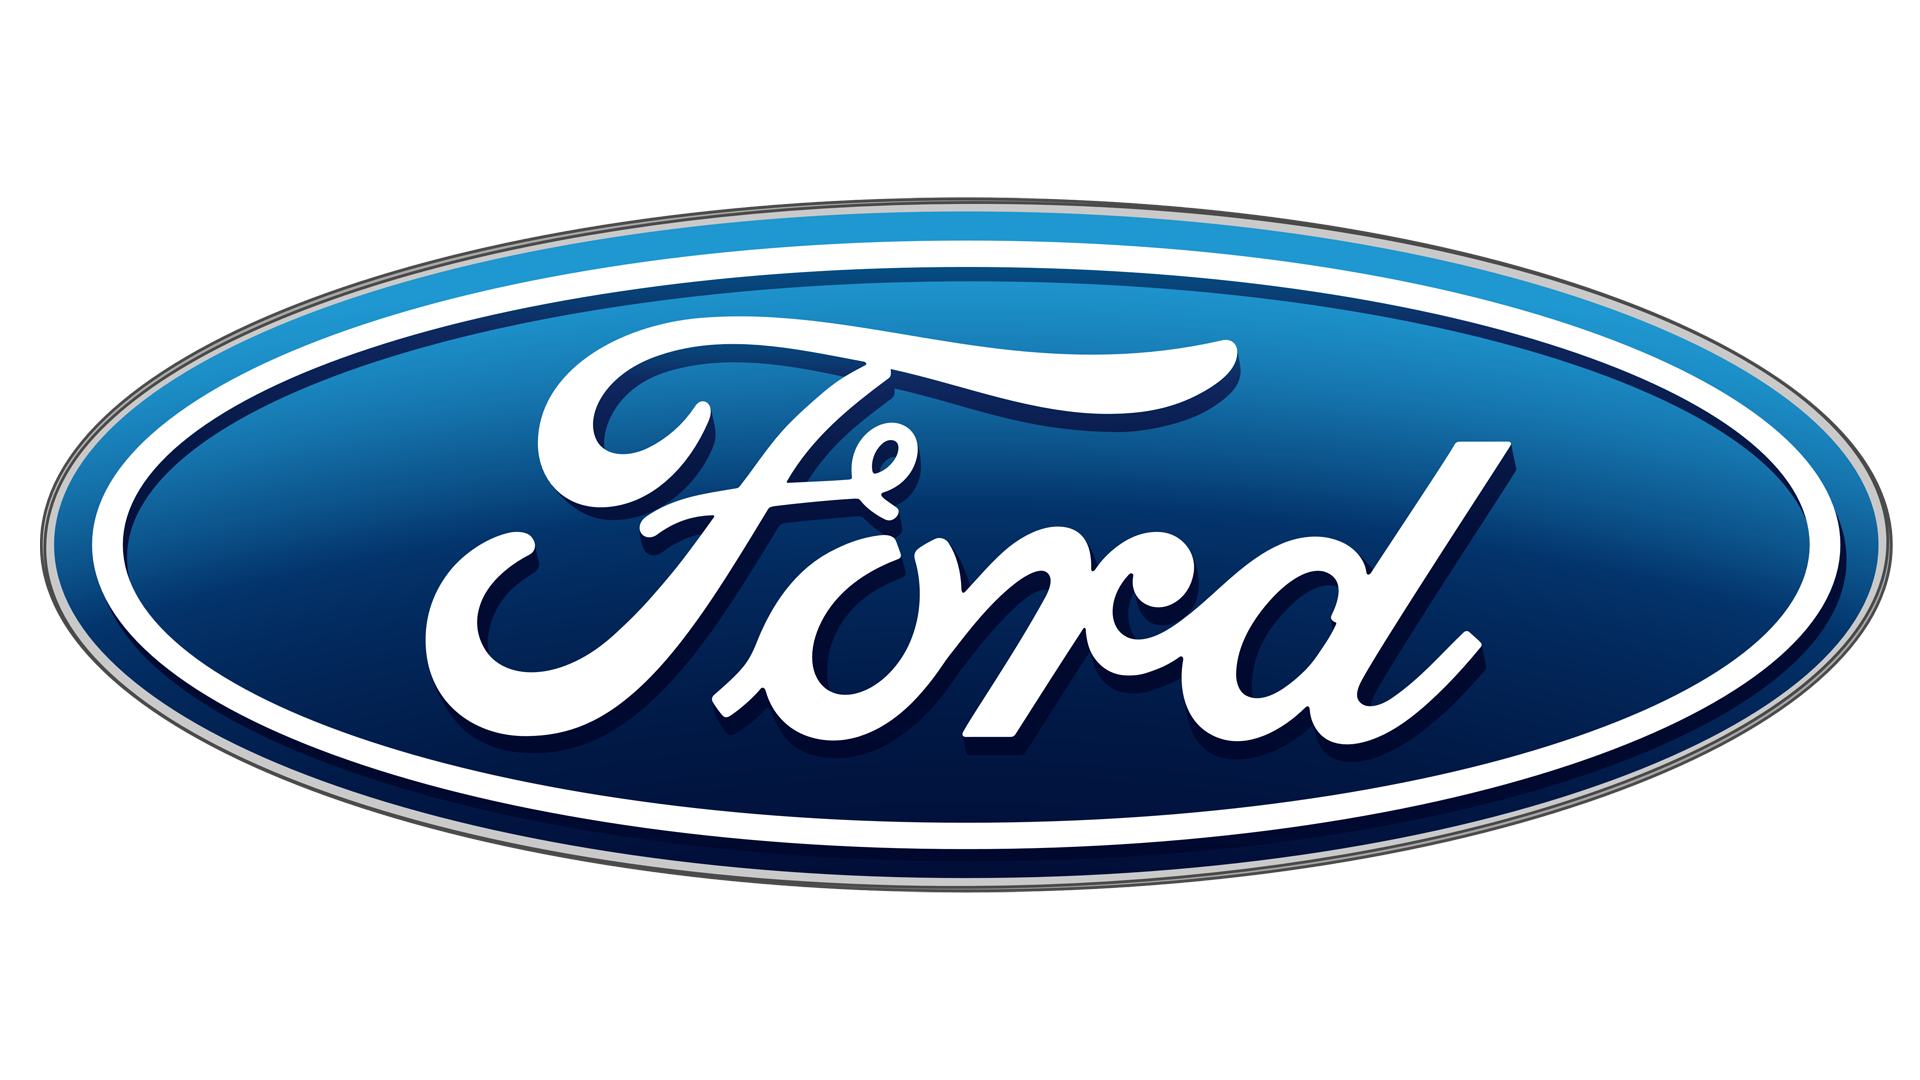 ford logo ford symbol meaning history and evolution rh 1000logos net ford logo font download ford logo font download